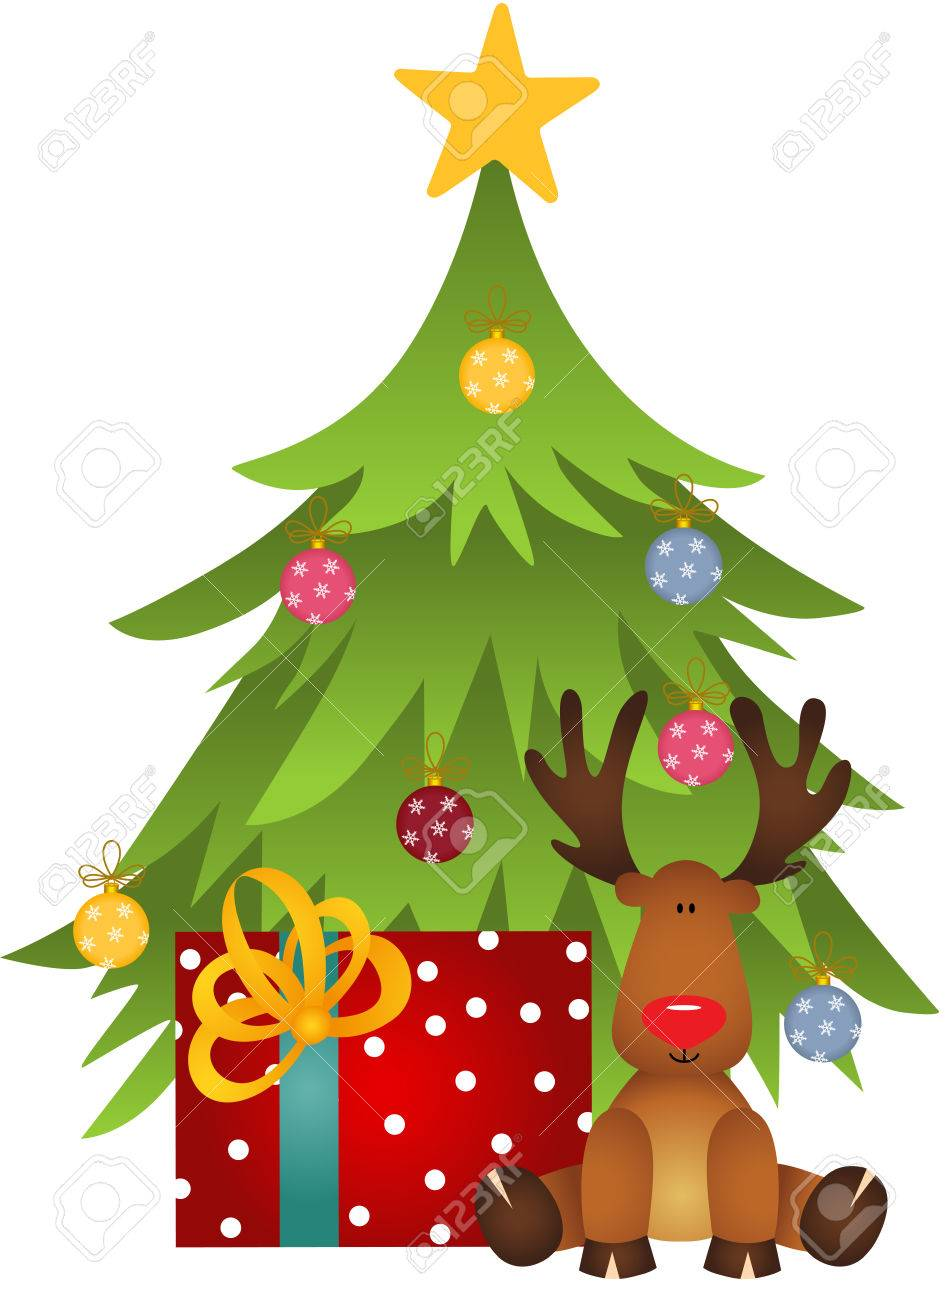 hight resolution of cute reindeer with christmas tree and gift stock vector 67096097